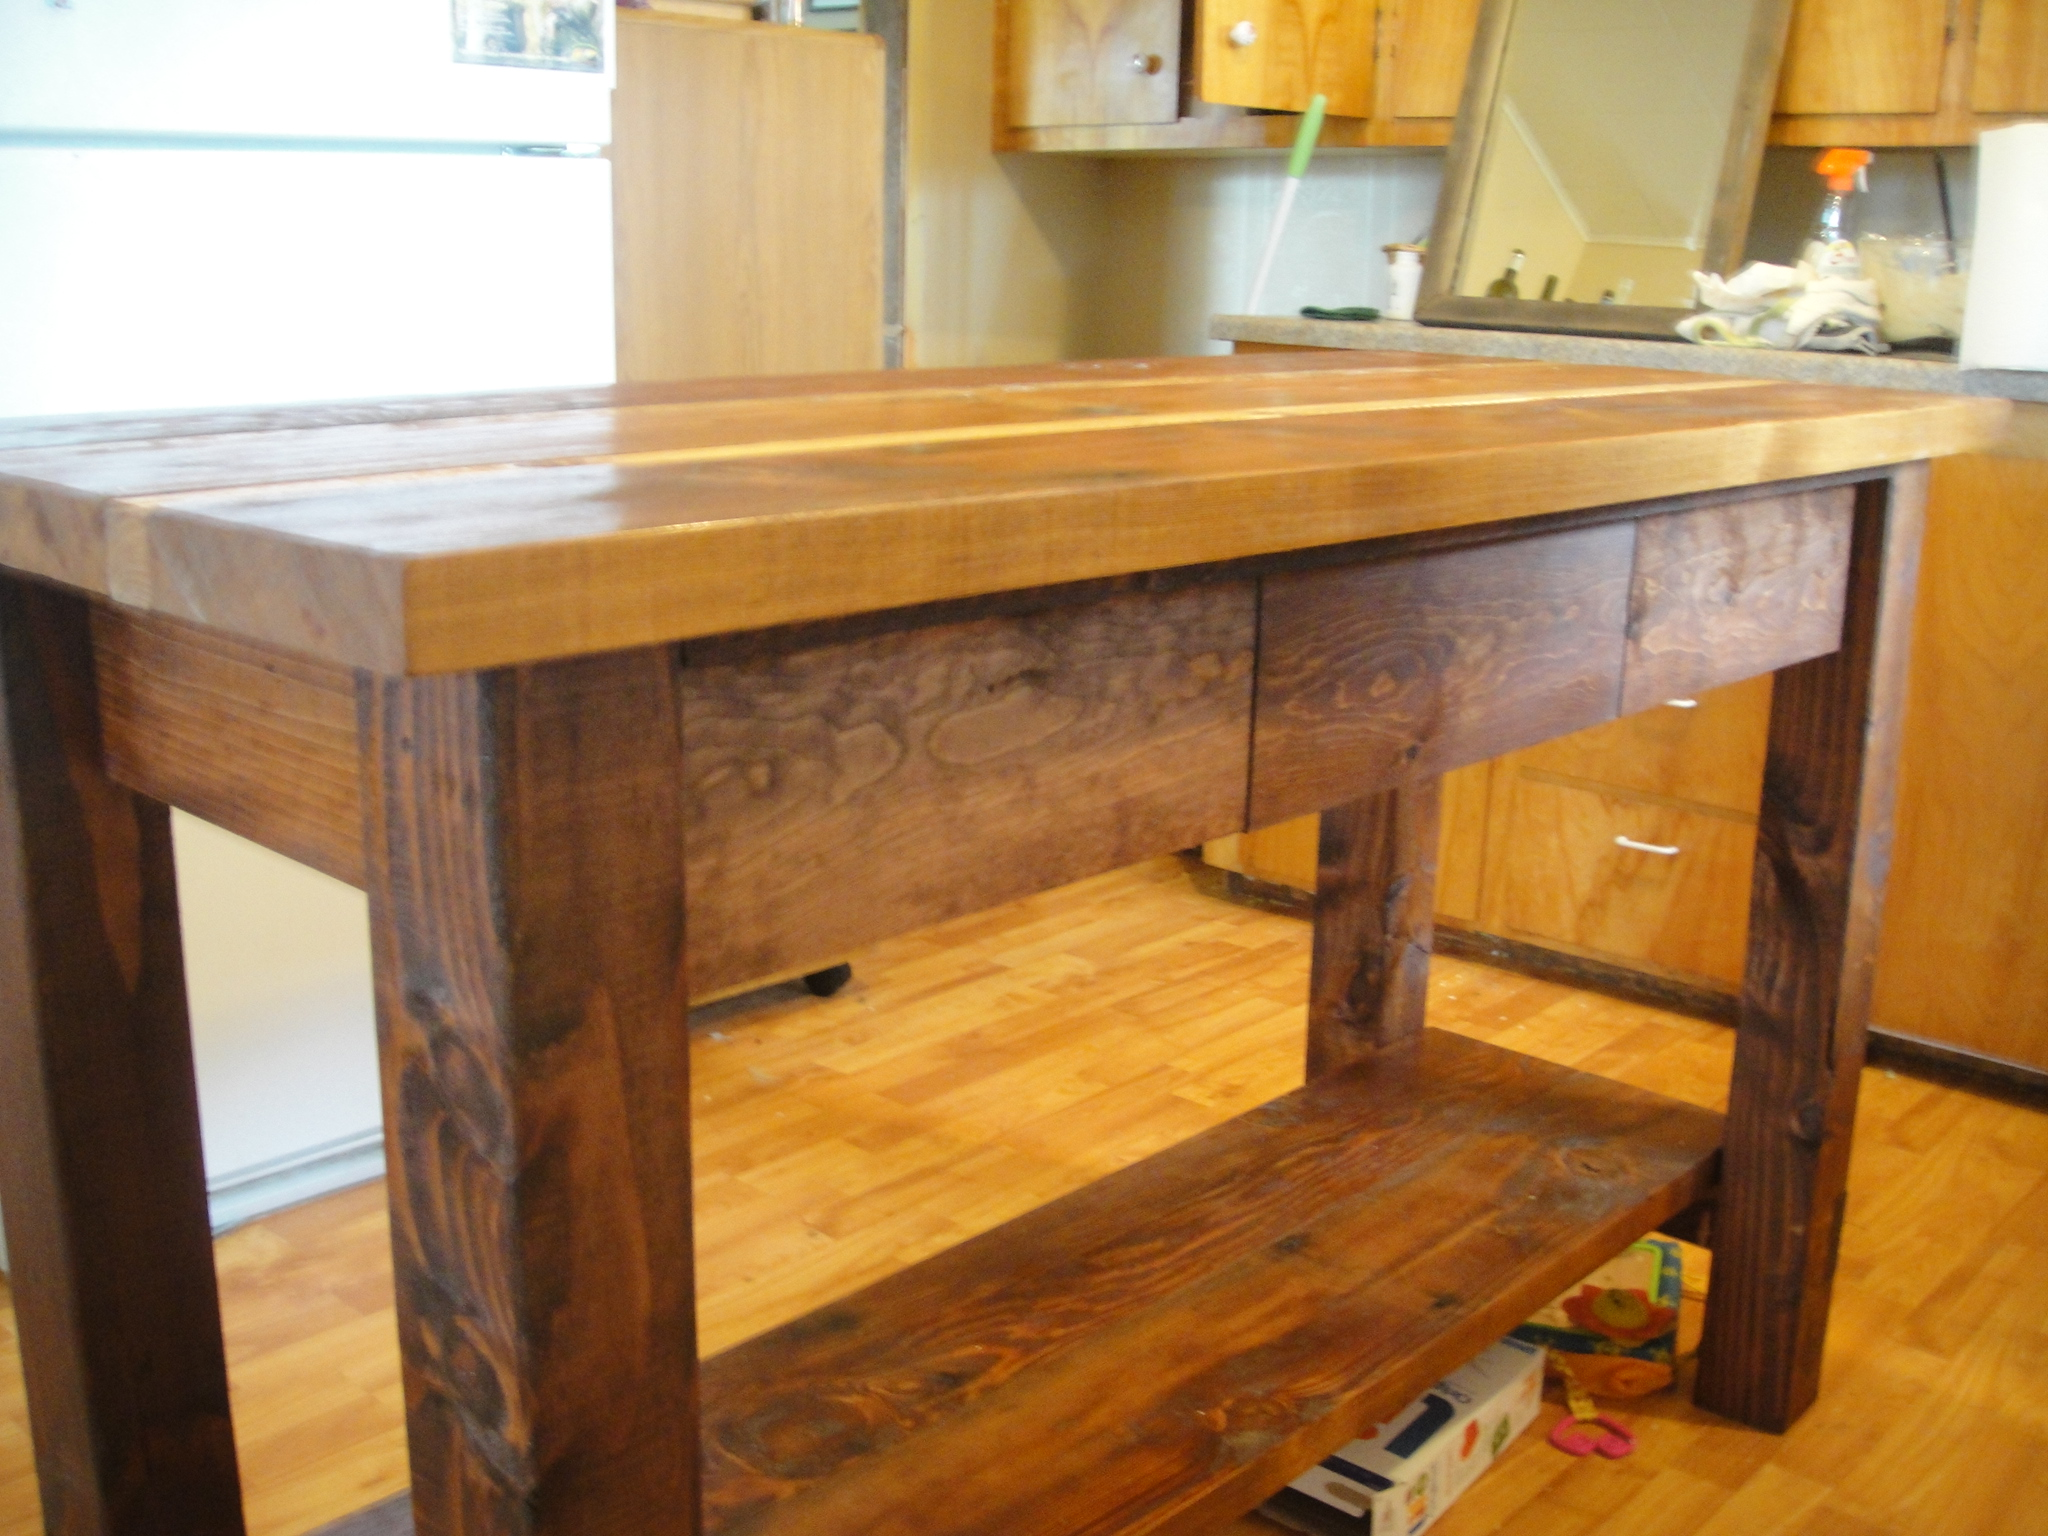 Ana white kitchen island from reclaimed wood diy projects for Kitchen island cabinet plans